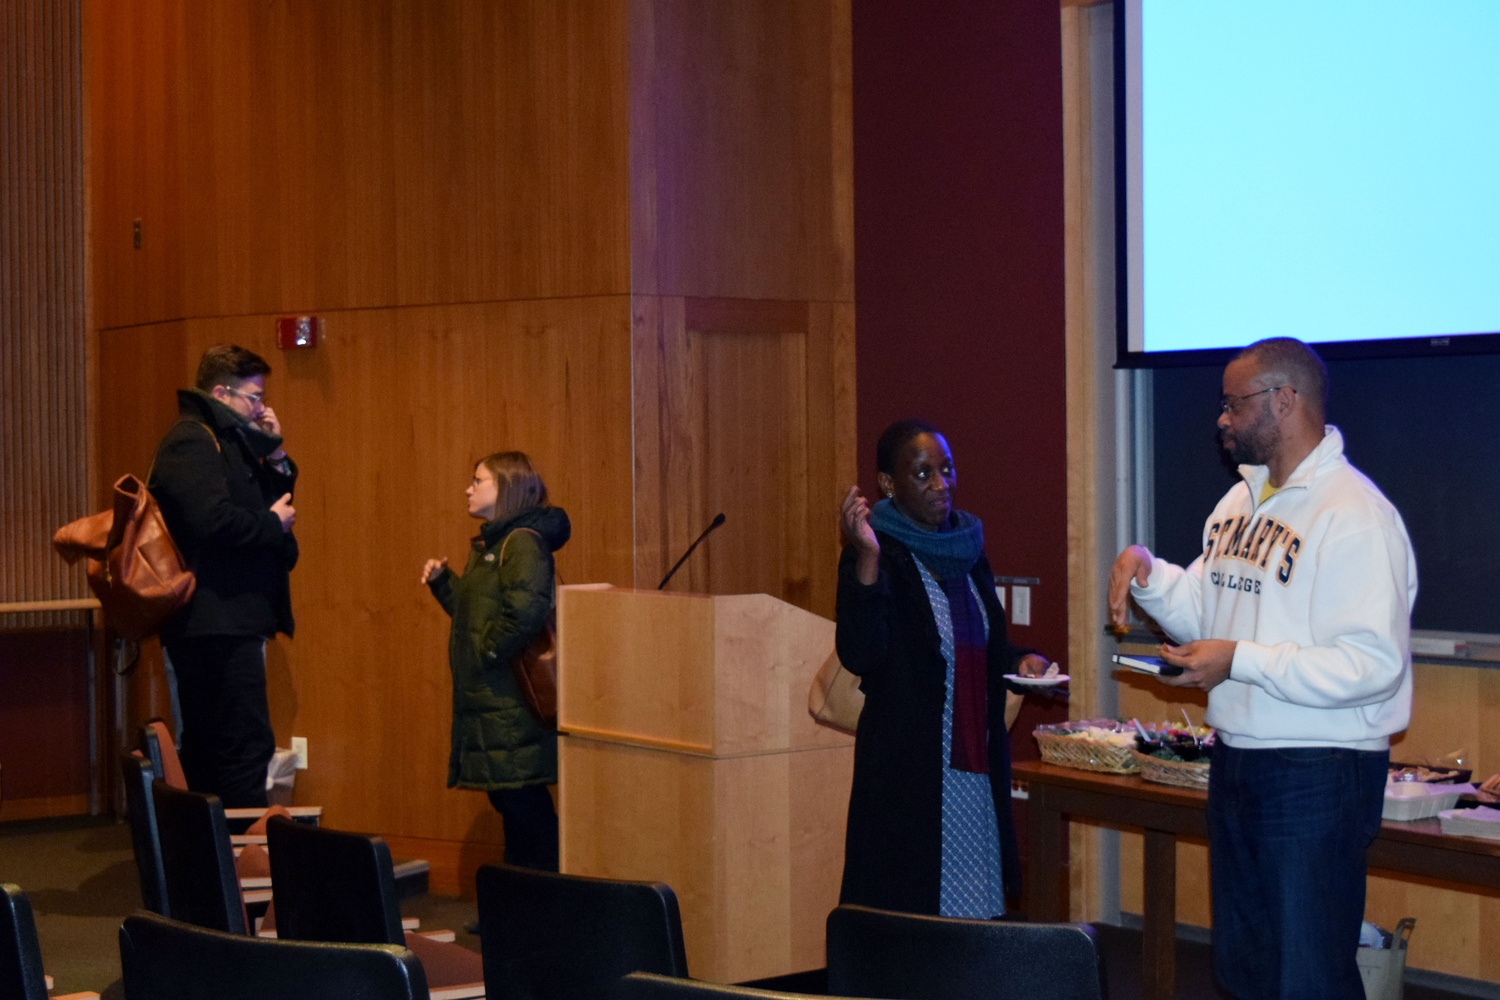 """People mingle after a talk on """"Transgender Genealogies"""" by University of Michigan professor Lawrence M. LaFountain-Stokes '90, pictured left."""